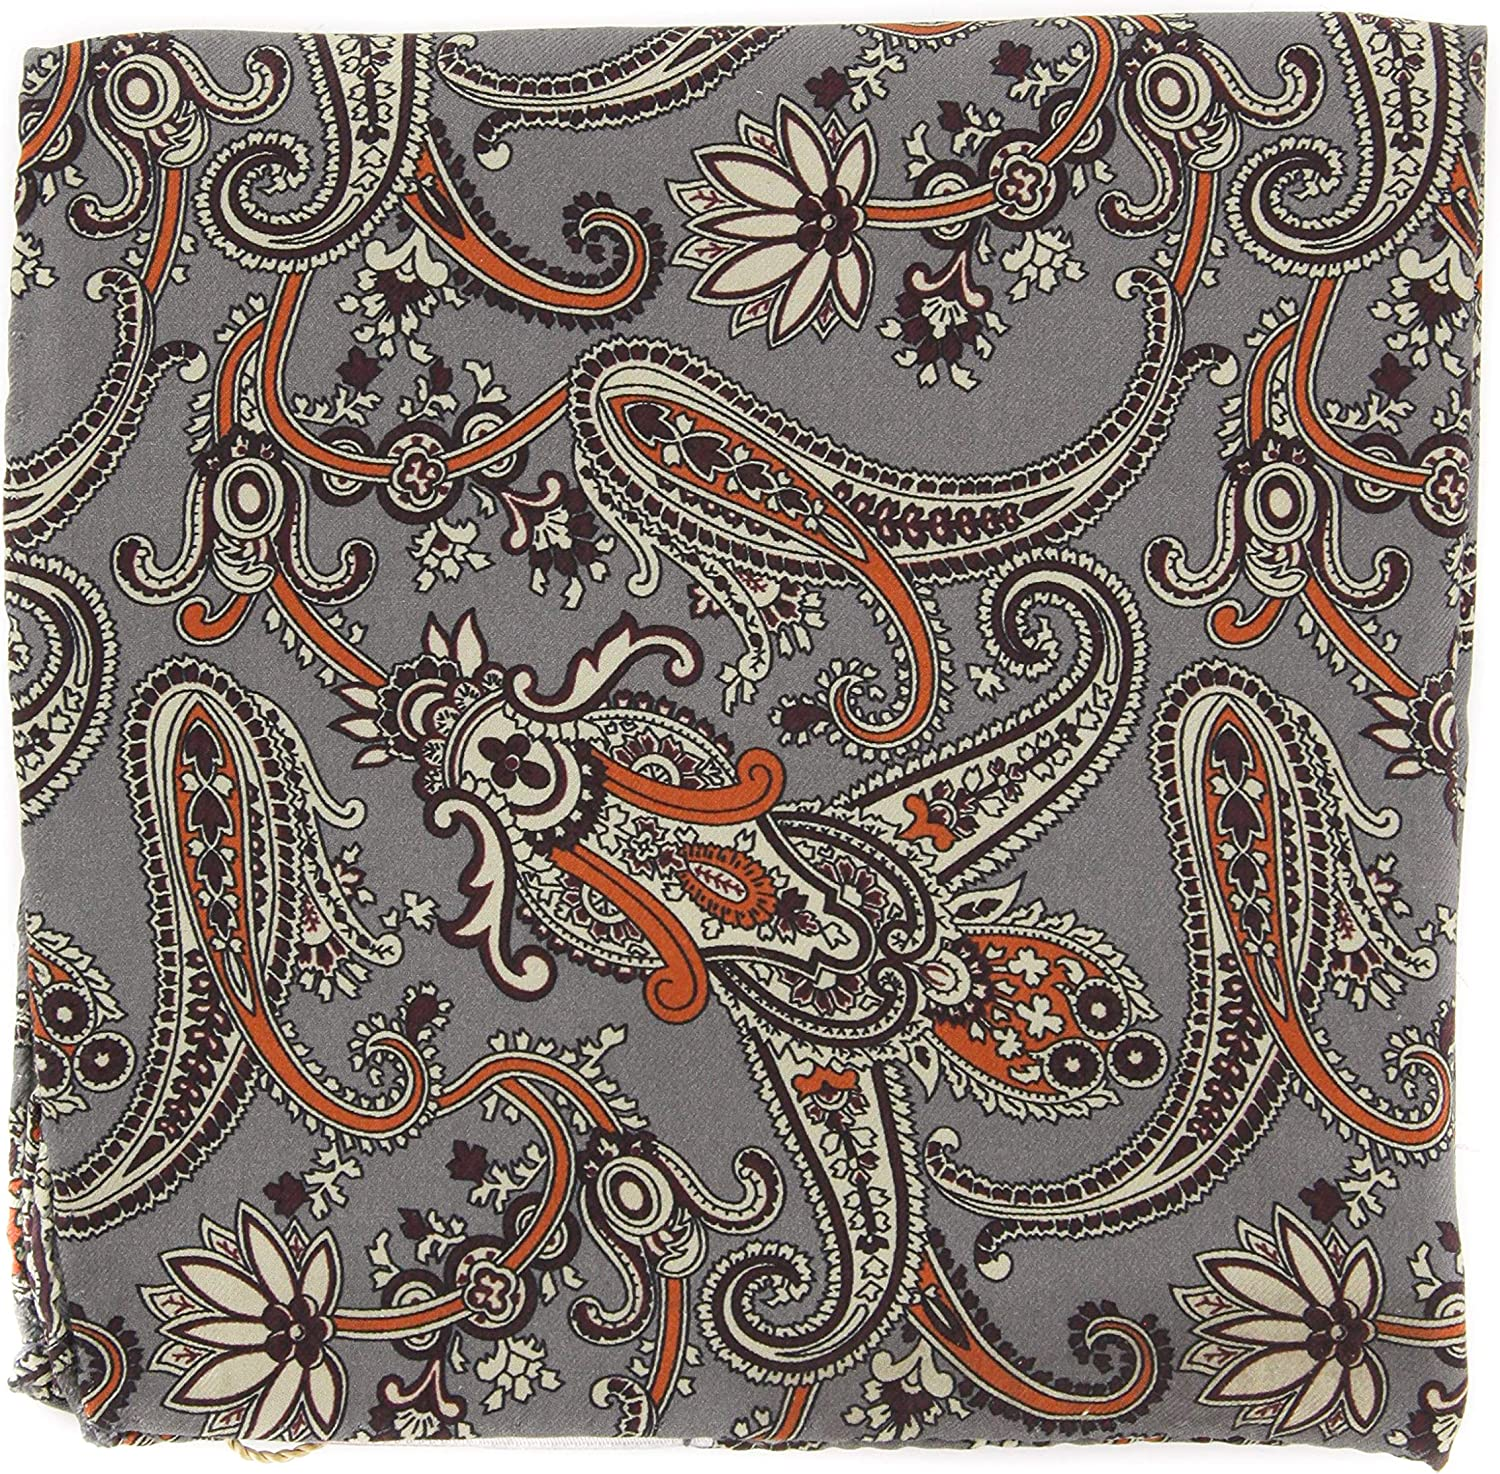 New Luciano Barbera Gray 35% OFF Paisley 2021 autumn and winter new Square - Pocket x 13